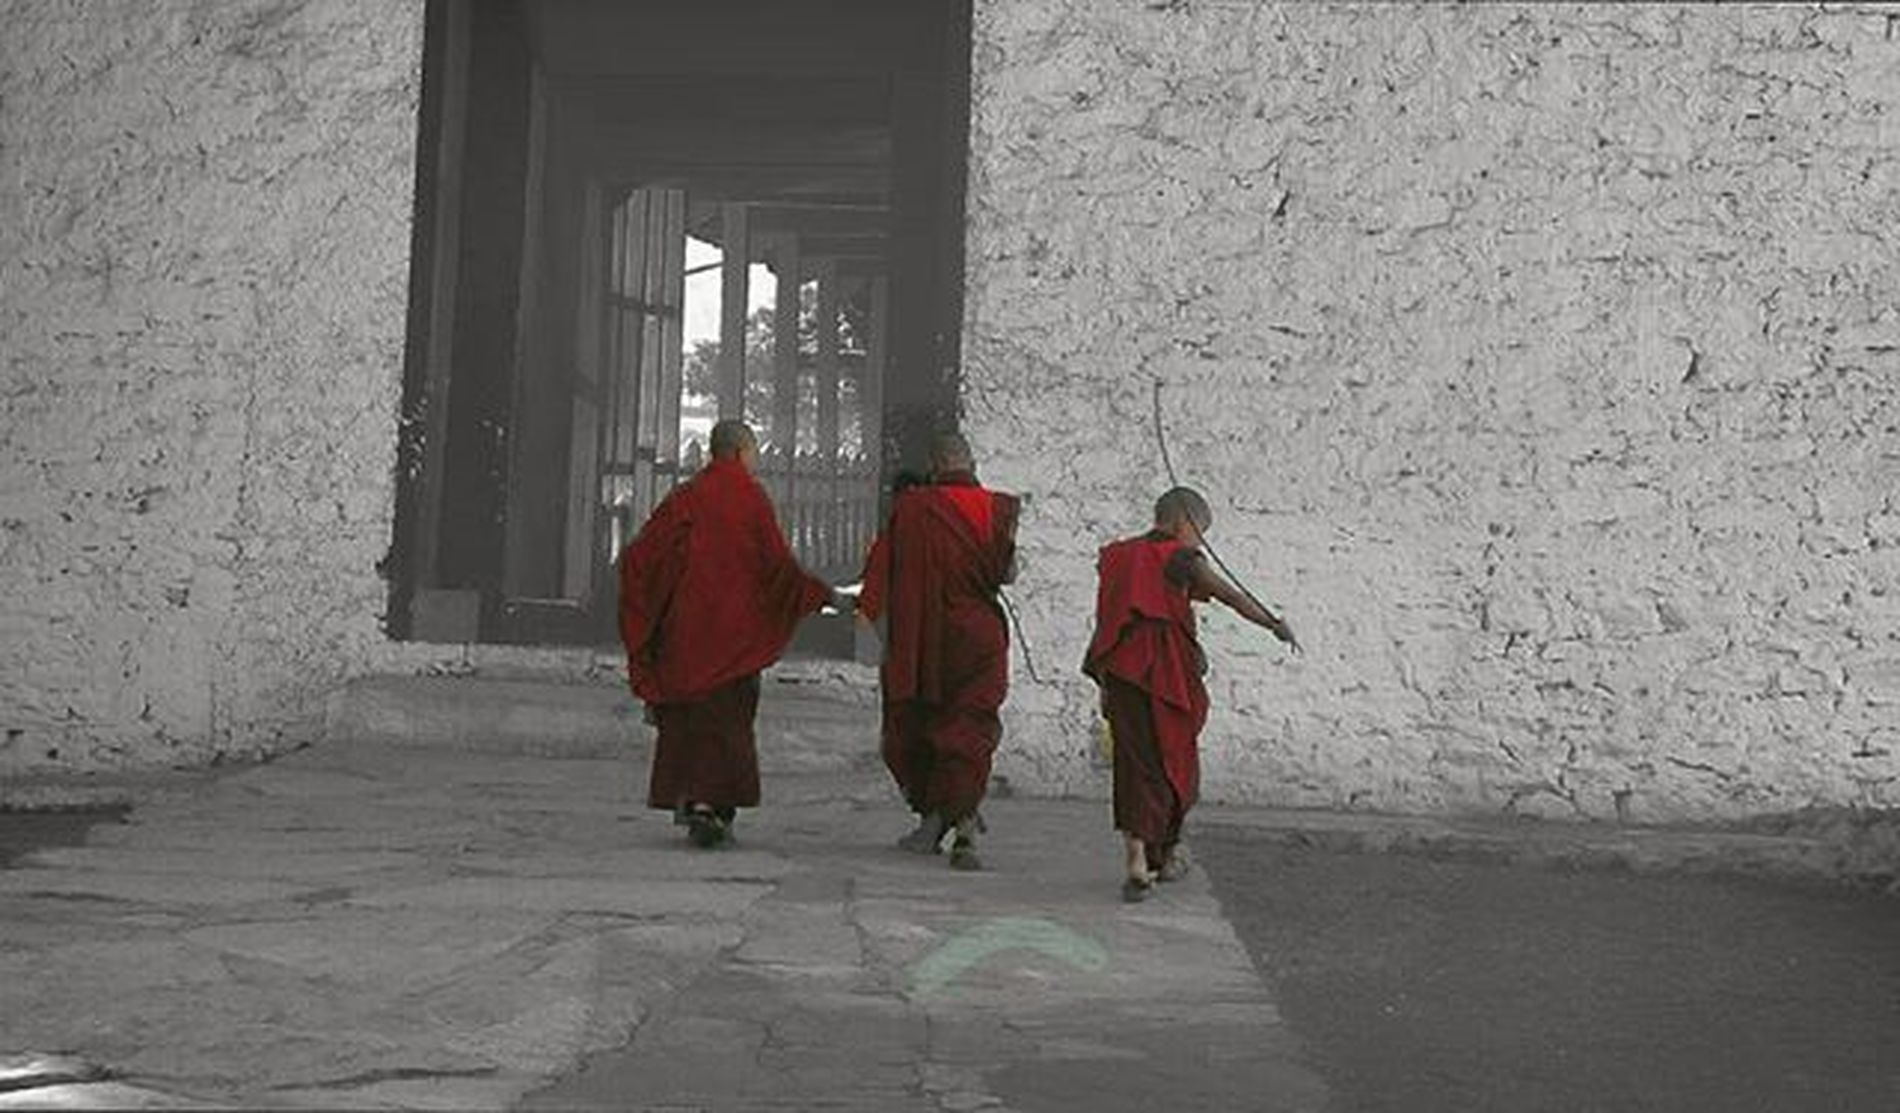 Little monks ! Bhutan Bhutandiaries NikonD5200 Nikon Nikonphotographers Punakha Punakhadzong Desaturated Travelingram Travelgram Traveldiaries Photographersofbangladesh Photogrid Instagram Humans Photogram Pro_ig Nikon5200 Culturegram Traditional Photographyeveryday Culture Buddhism Buddhist Peace monastery monk monks travelling travelbhutan